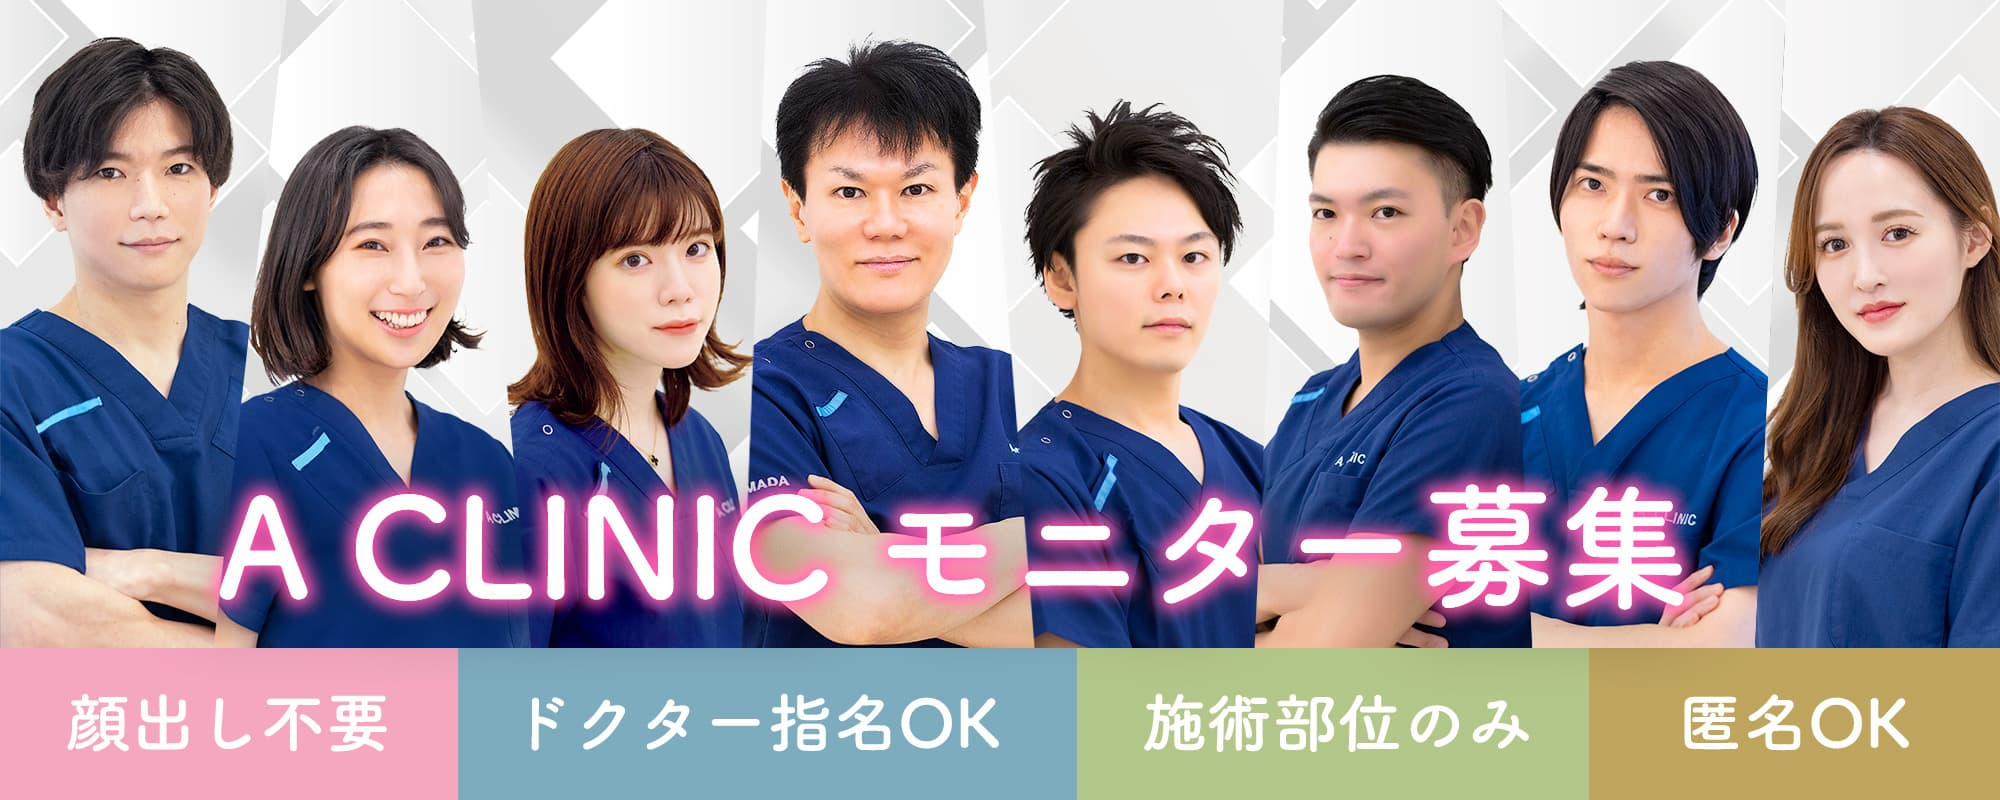 A CLINICモニター募集